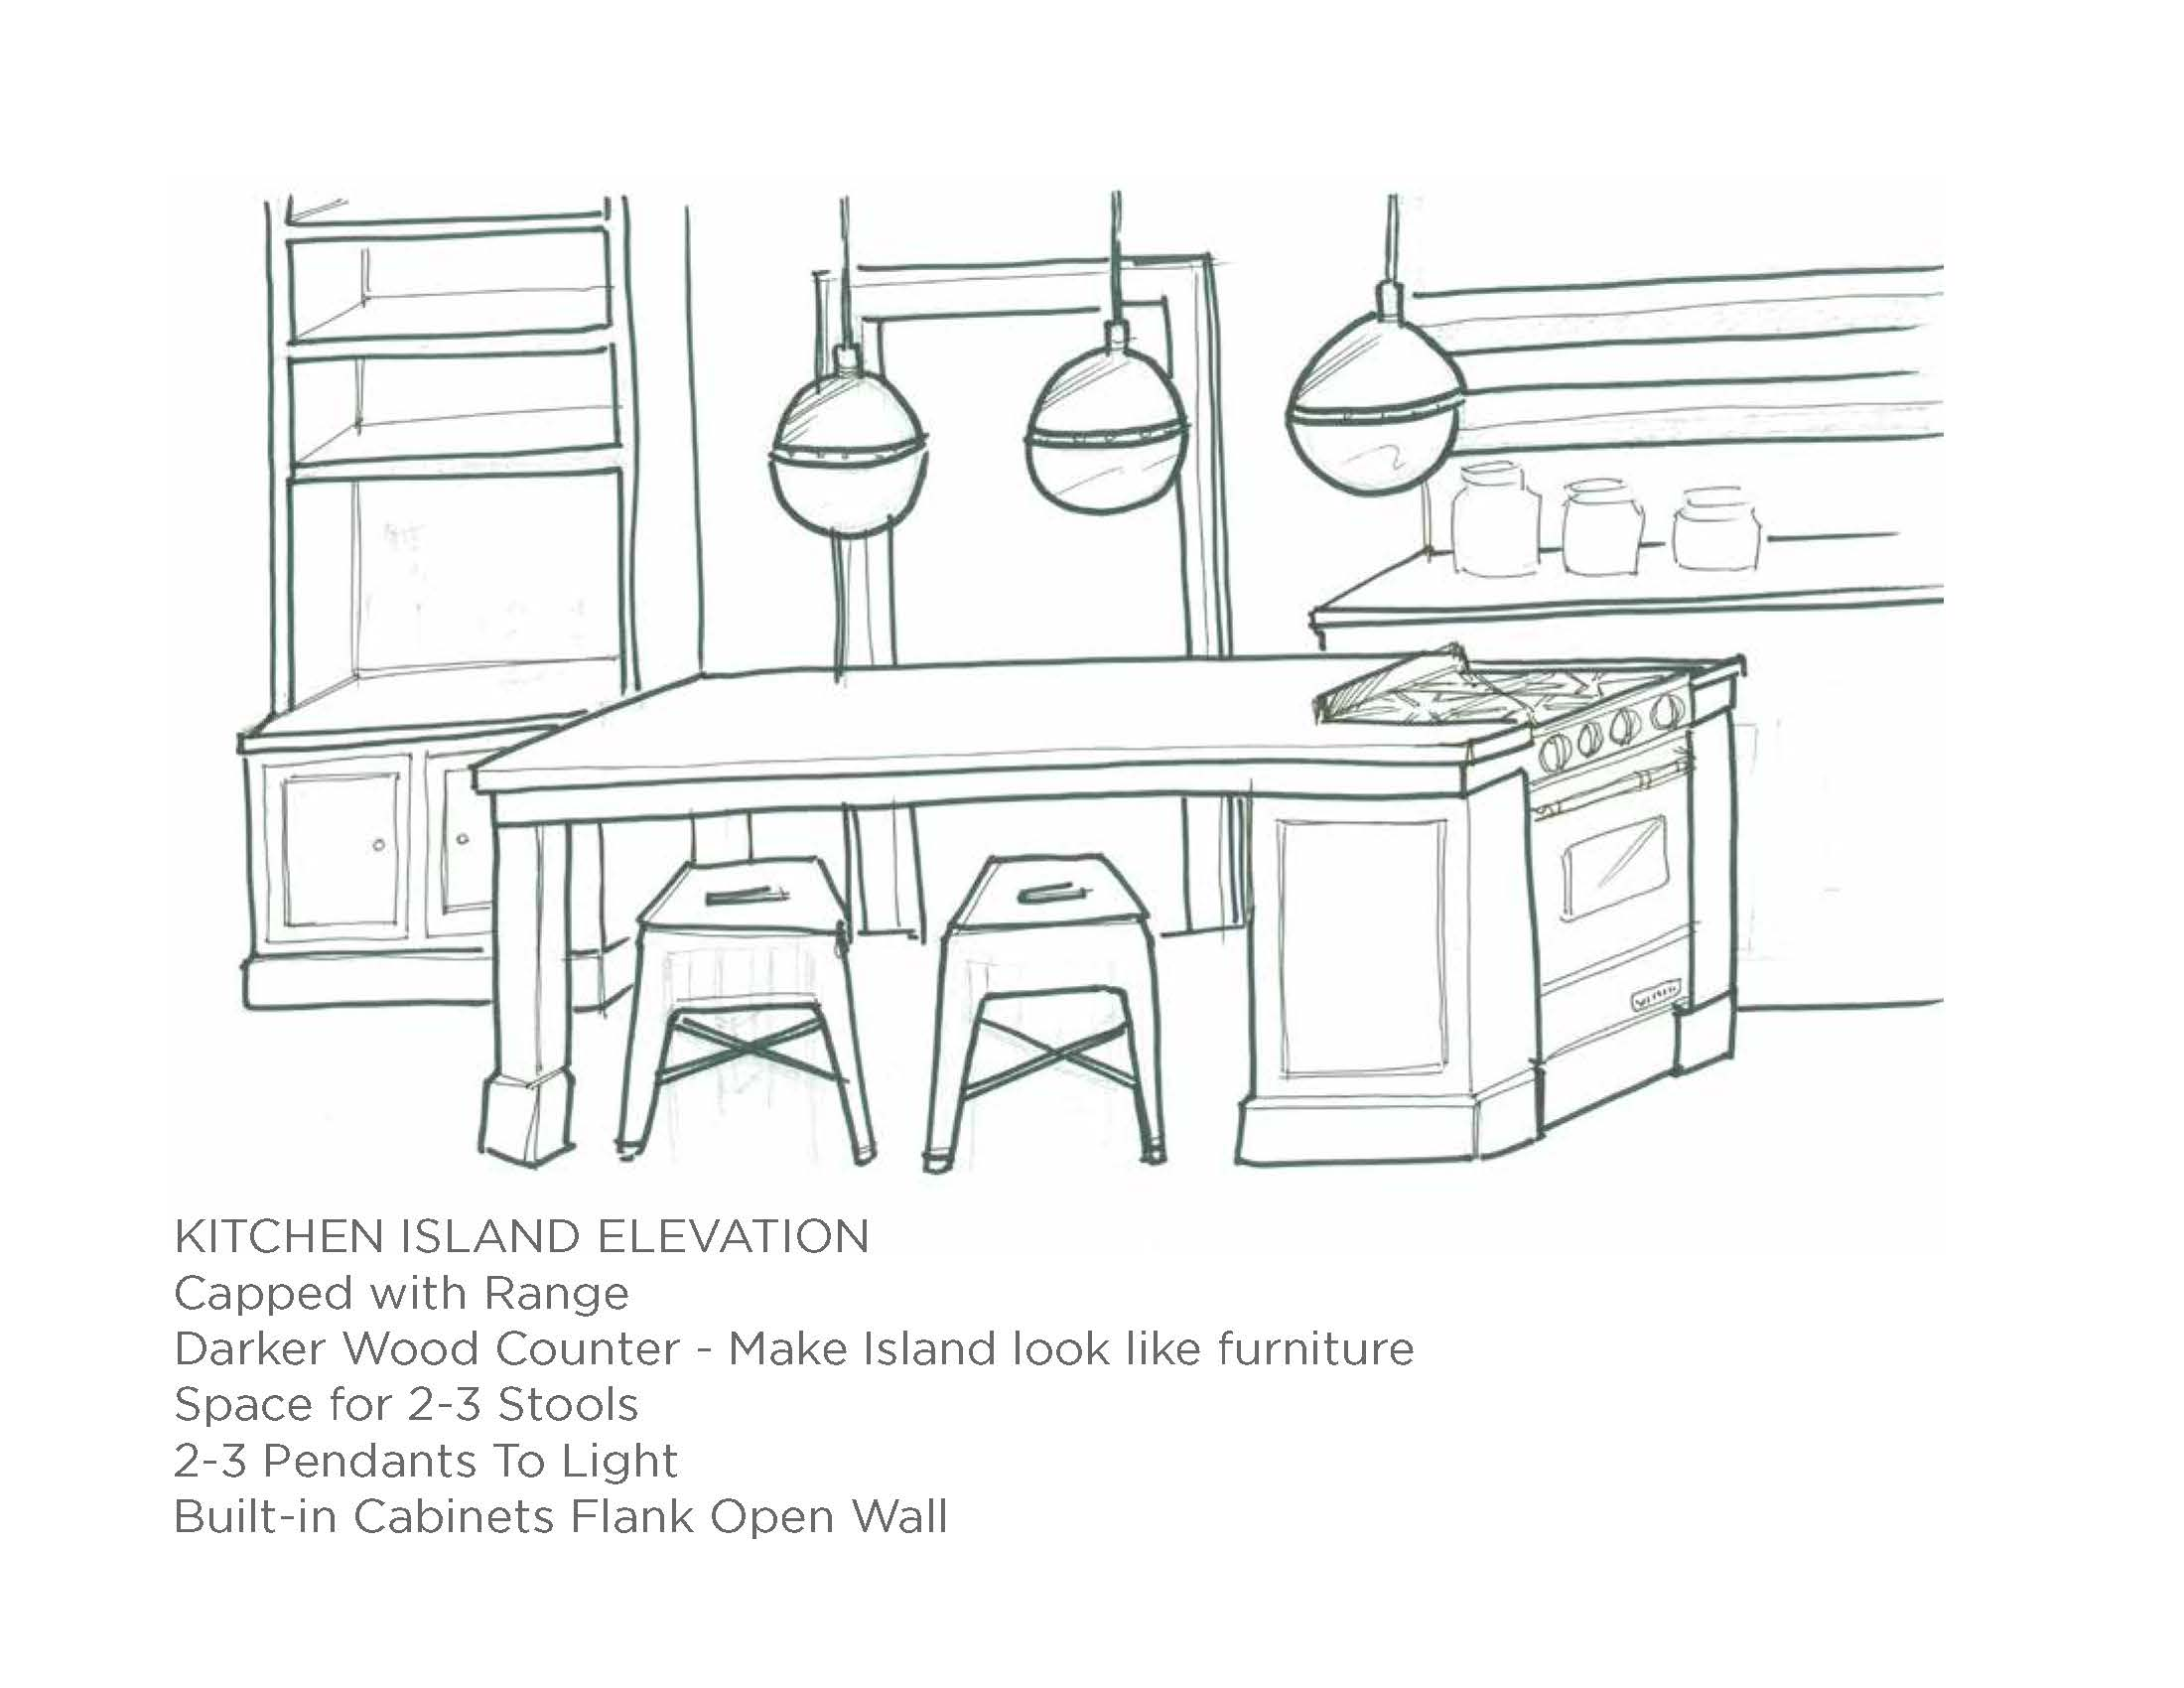 dollhouse_sketches_Page_3.jpg